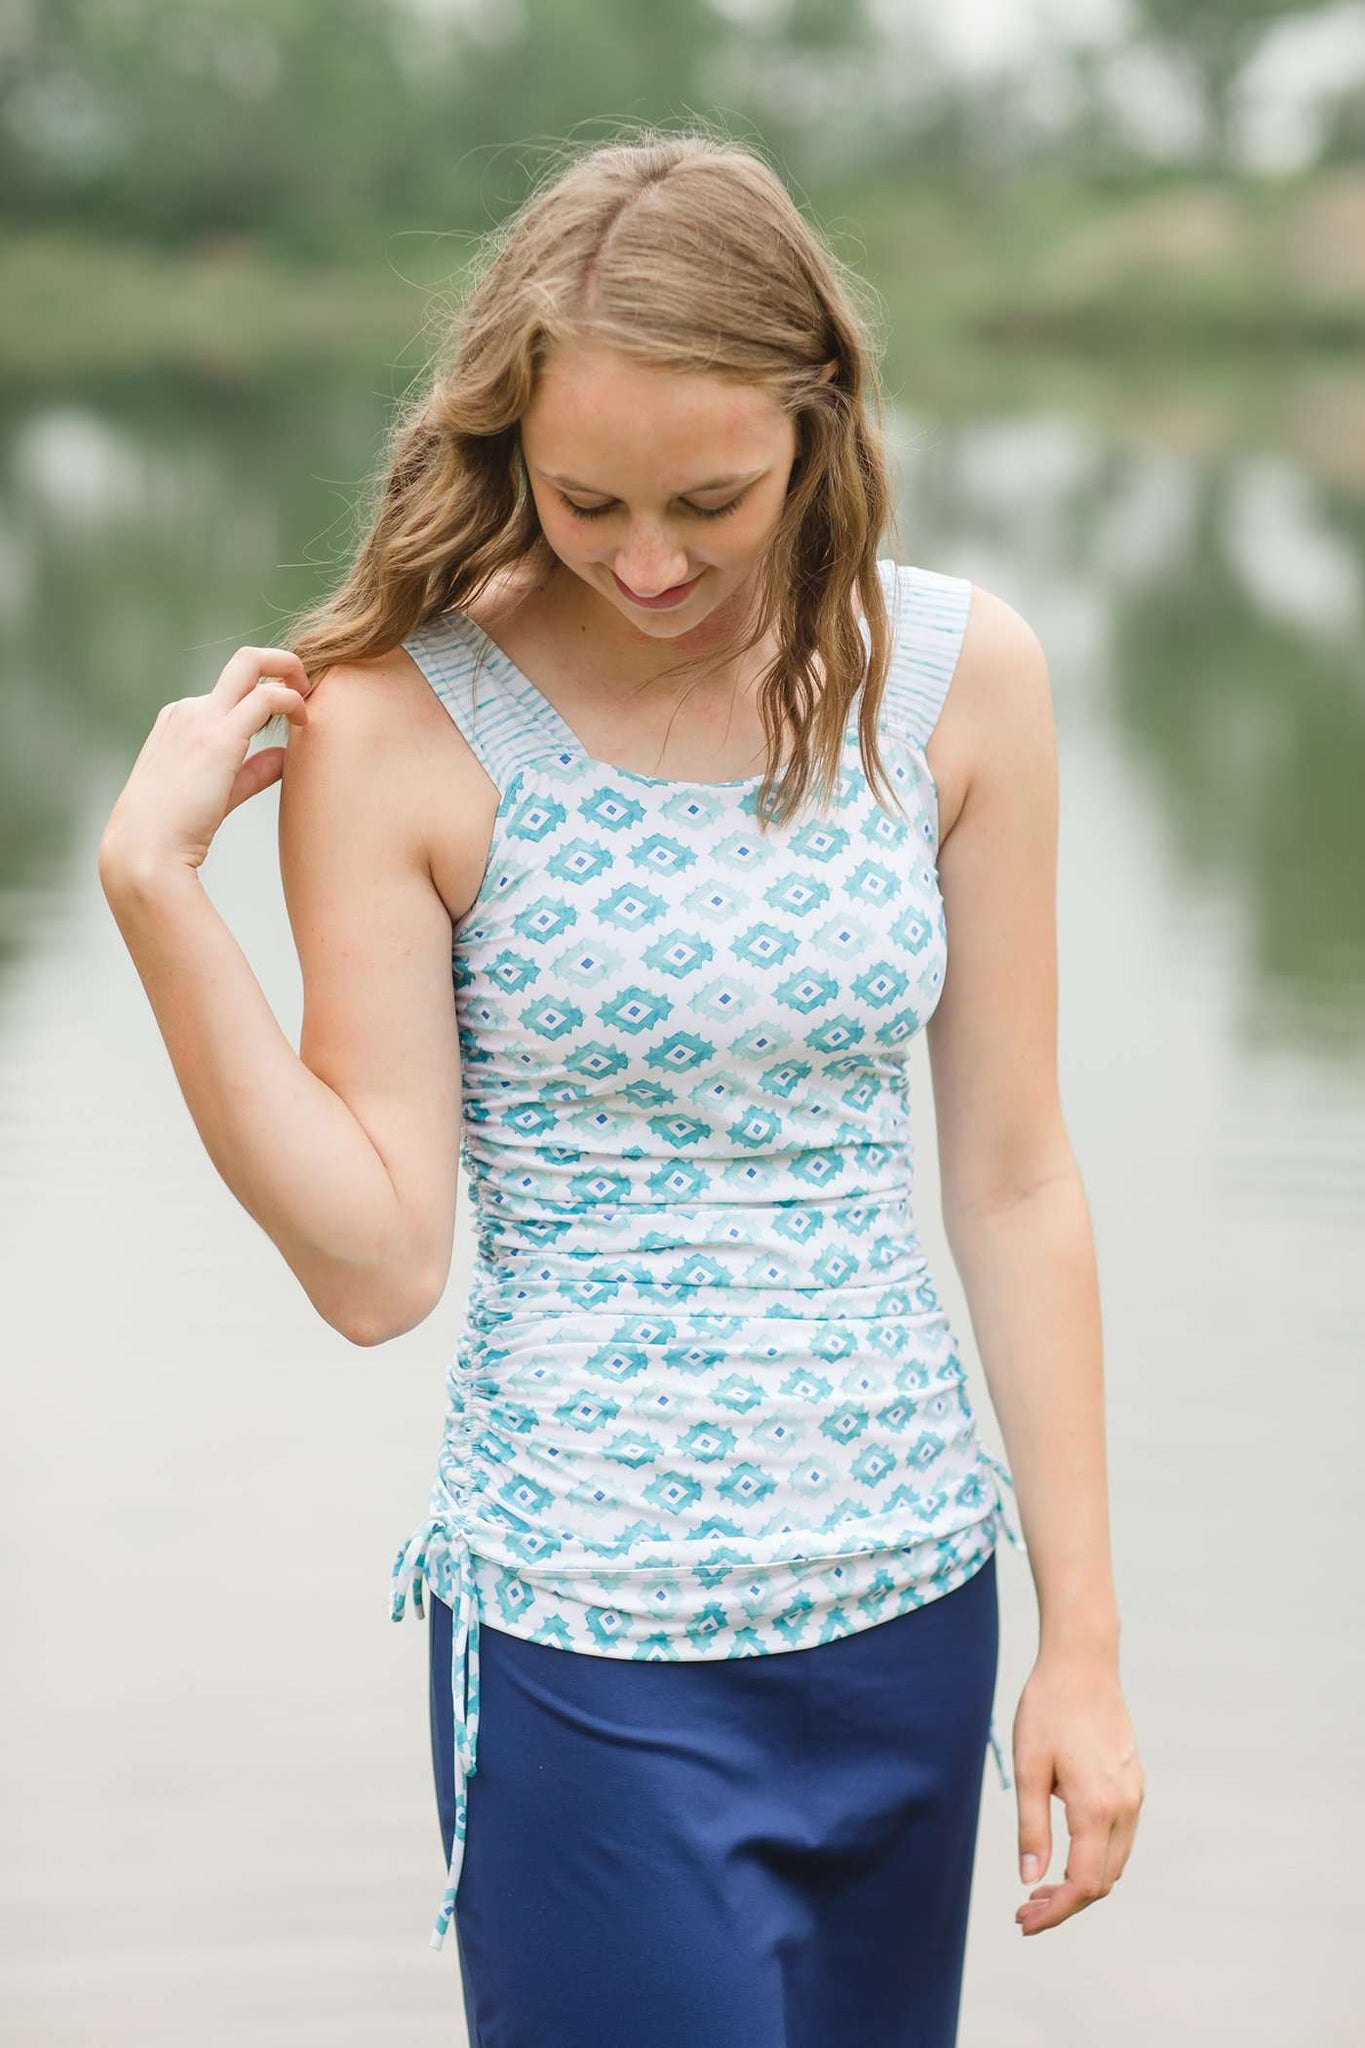 Teen girl wearing modest teal and white design long swim suit top with side cinch.